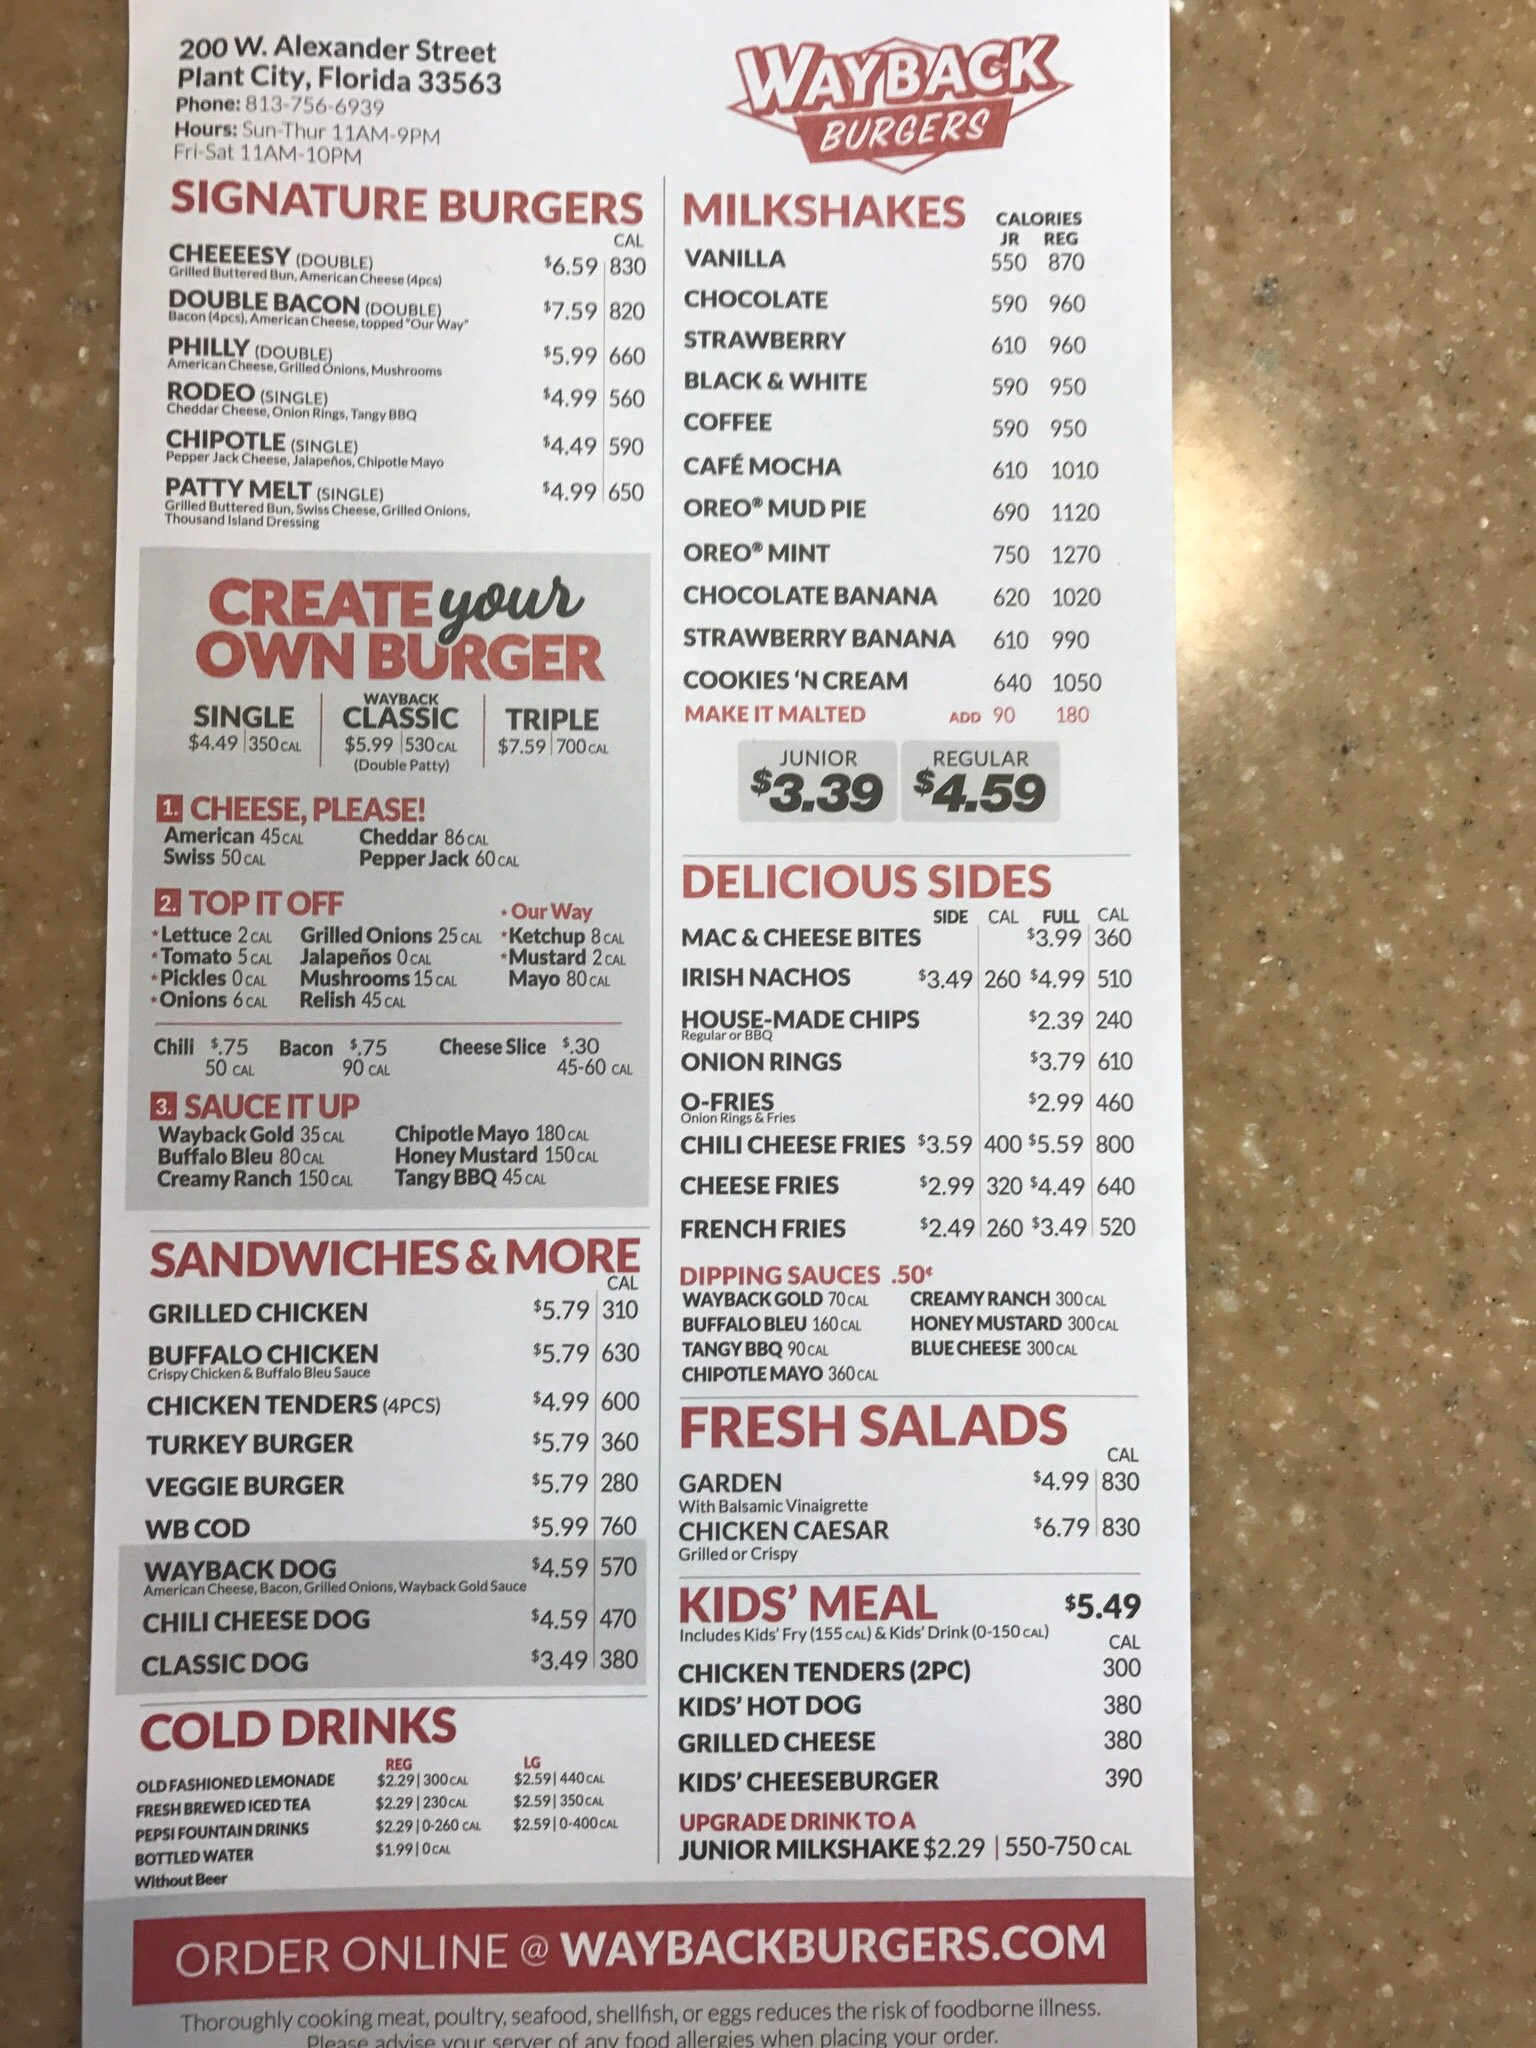 wayback burgers, plant city - restaurant reviews, phone number